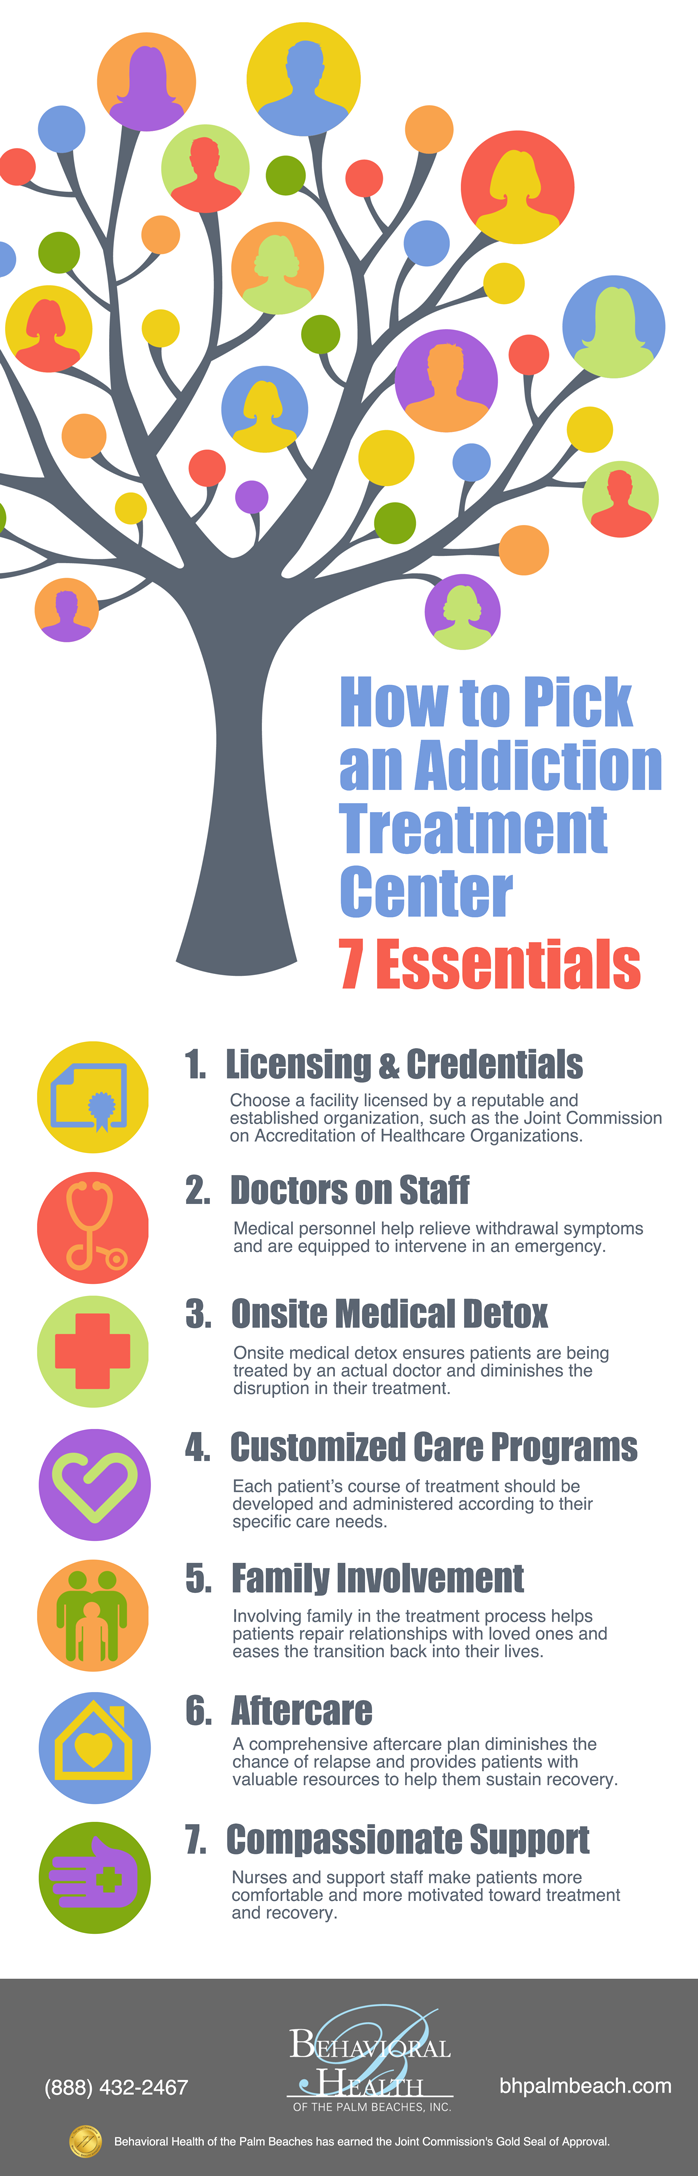 infographic-pick-an-addiction-treatment-center